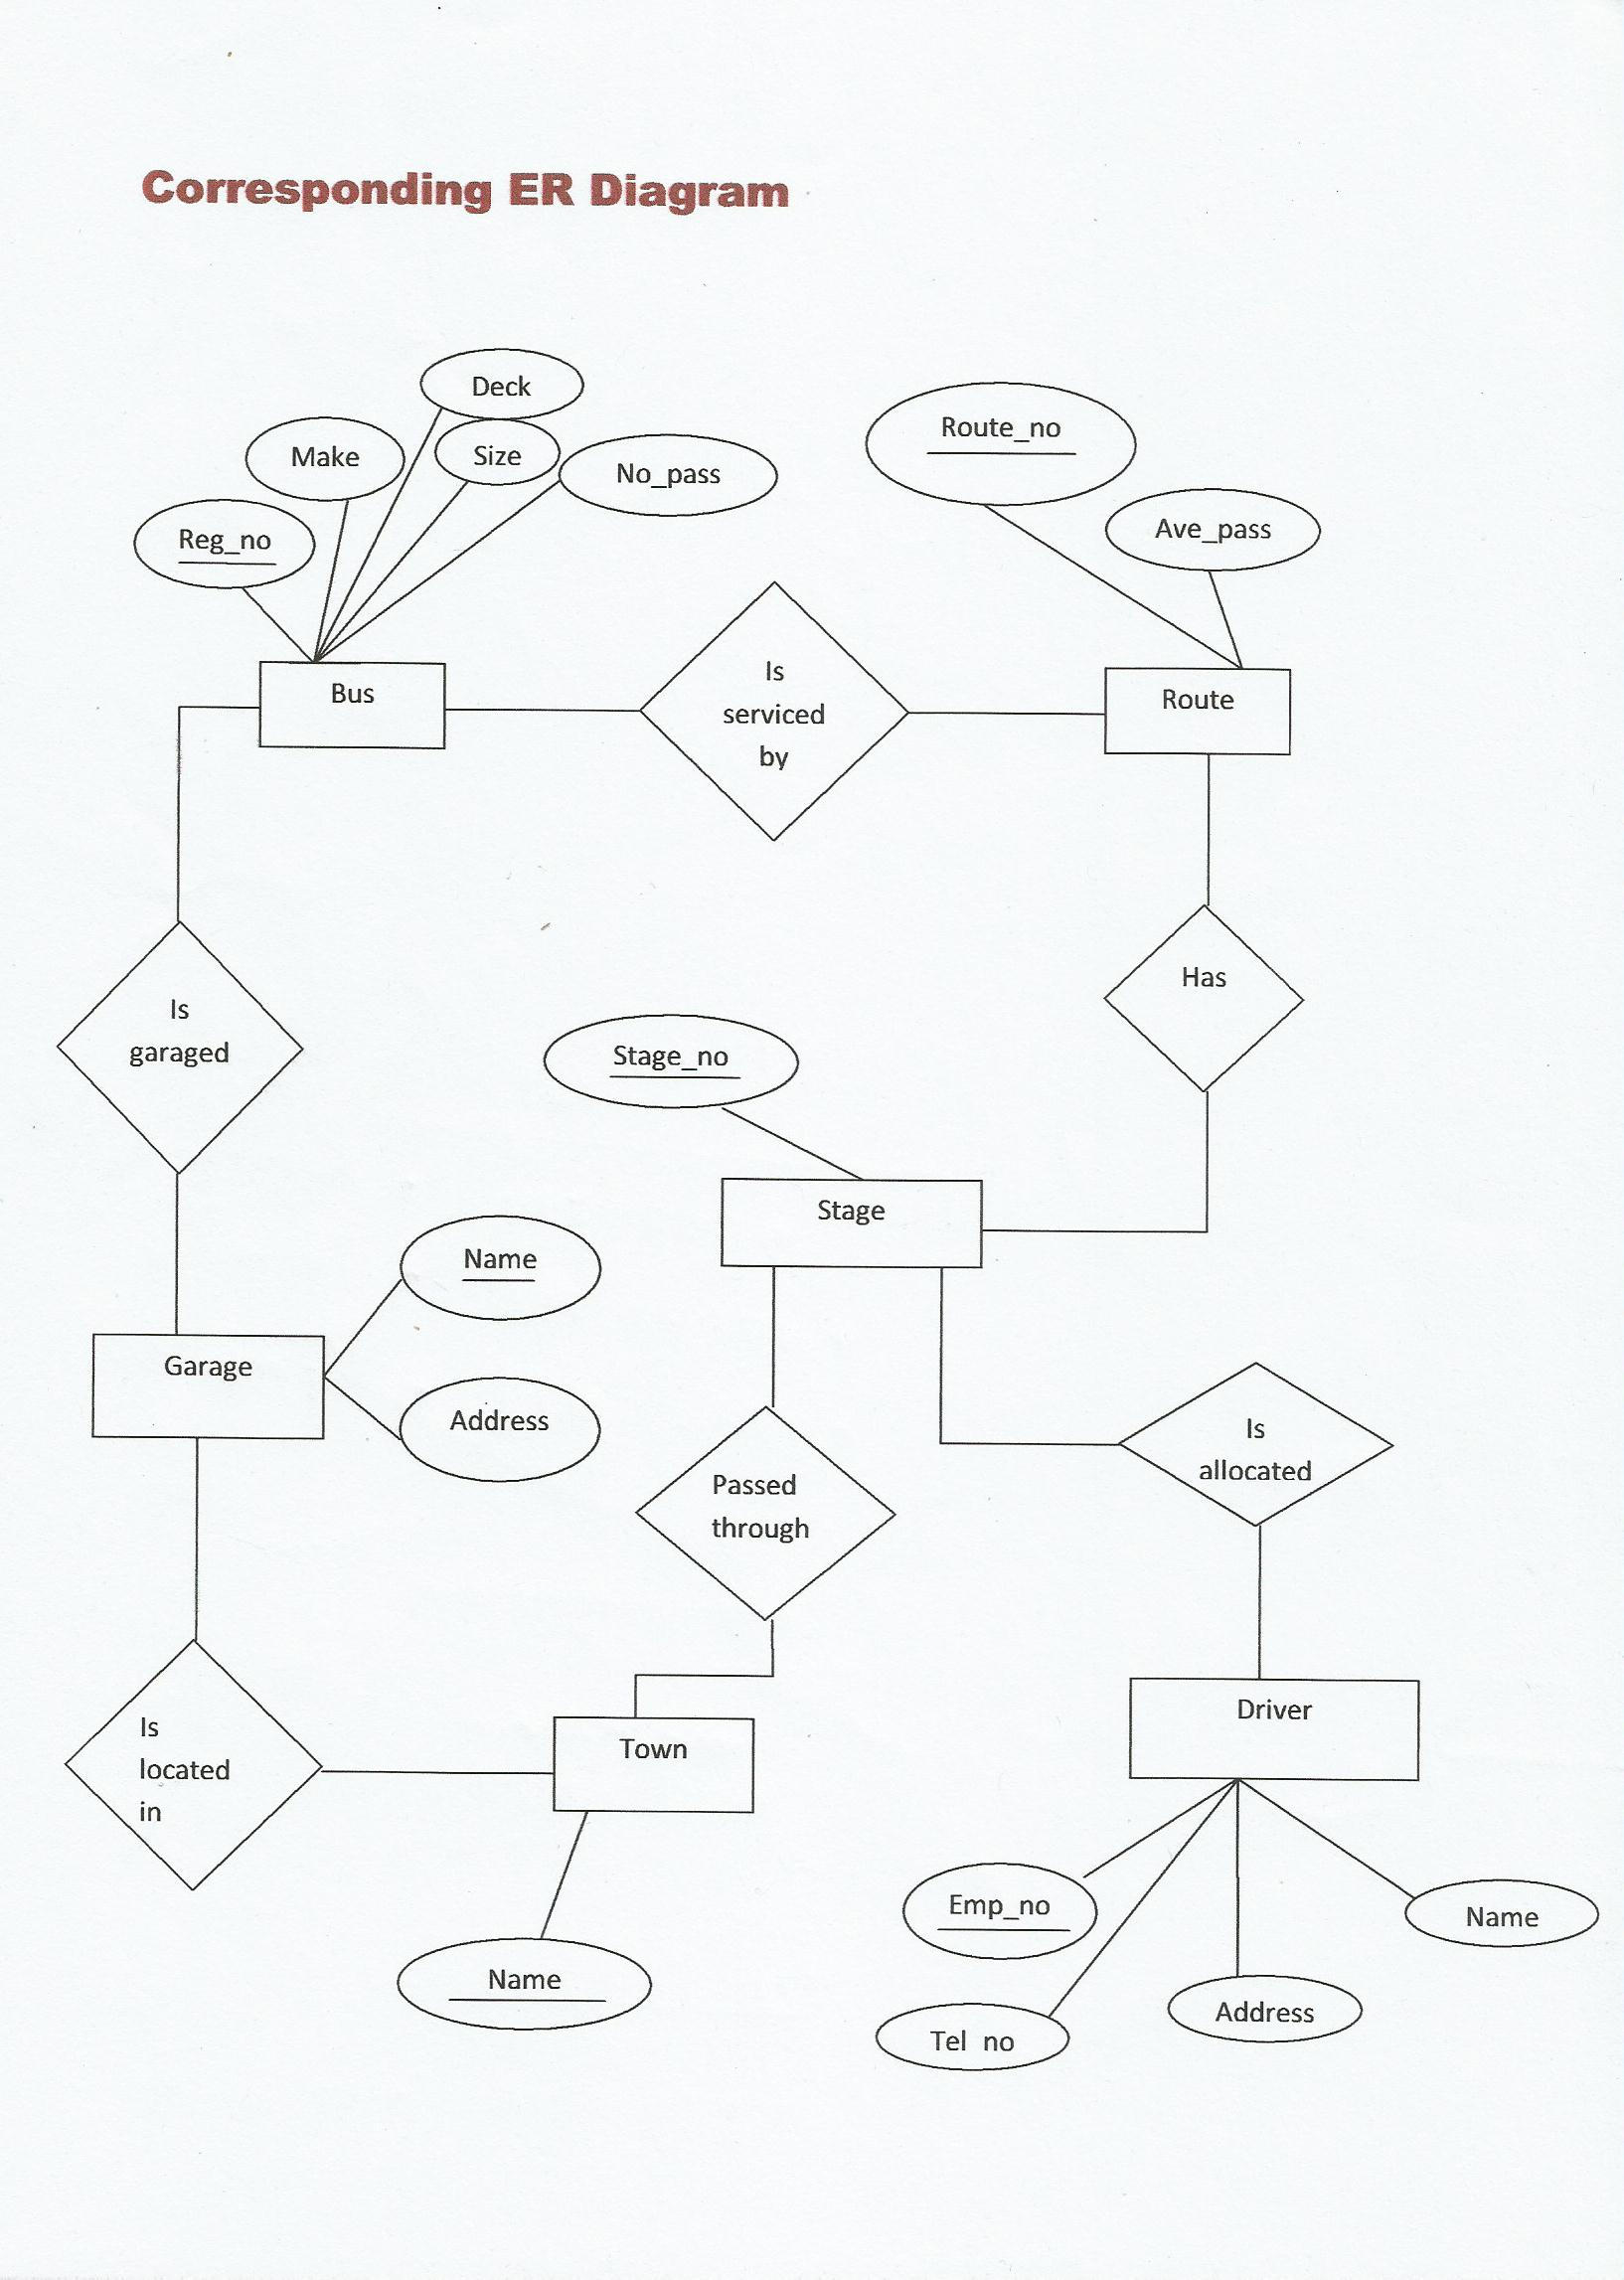 Mapping Er To Realtional | Lbs Kuttipedia | Page 2 pertaining to Mapping Of Er Diagram To Relational Model Examples